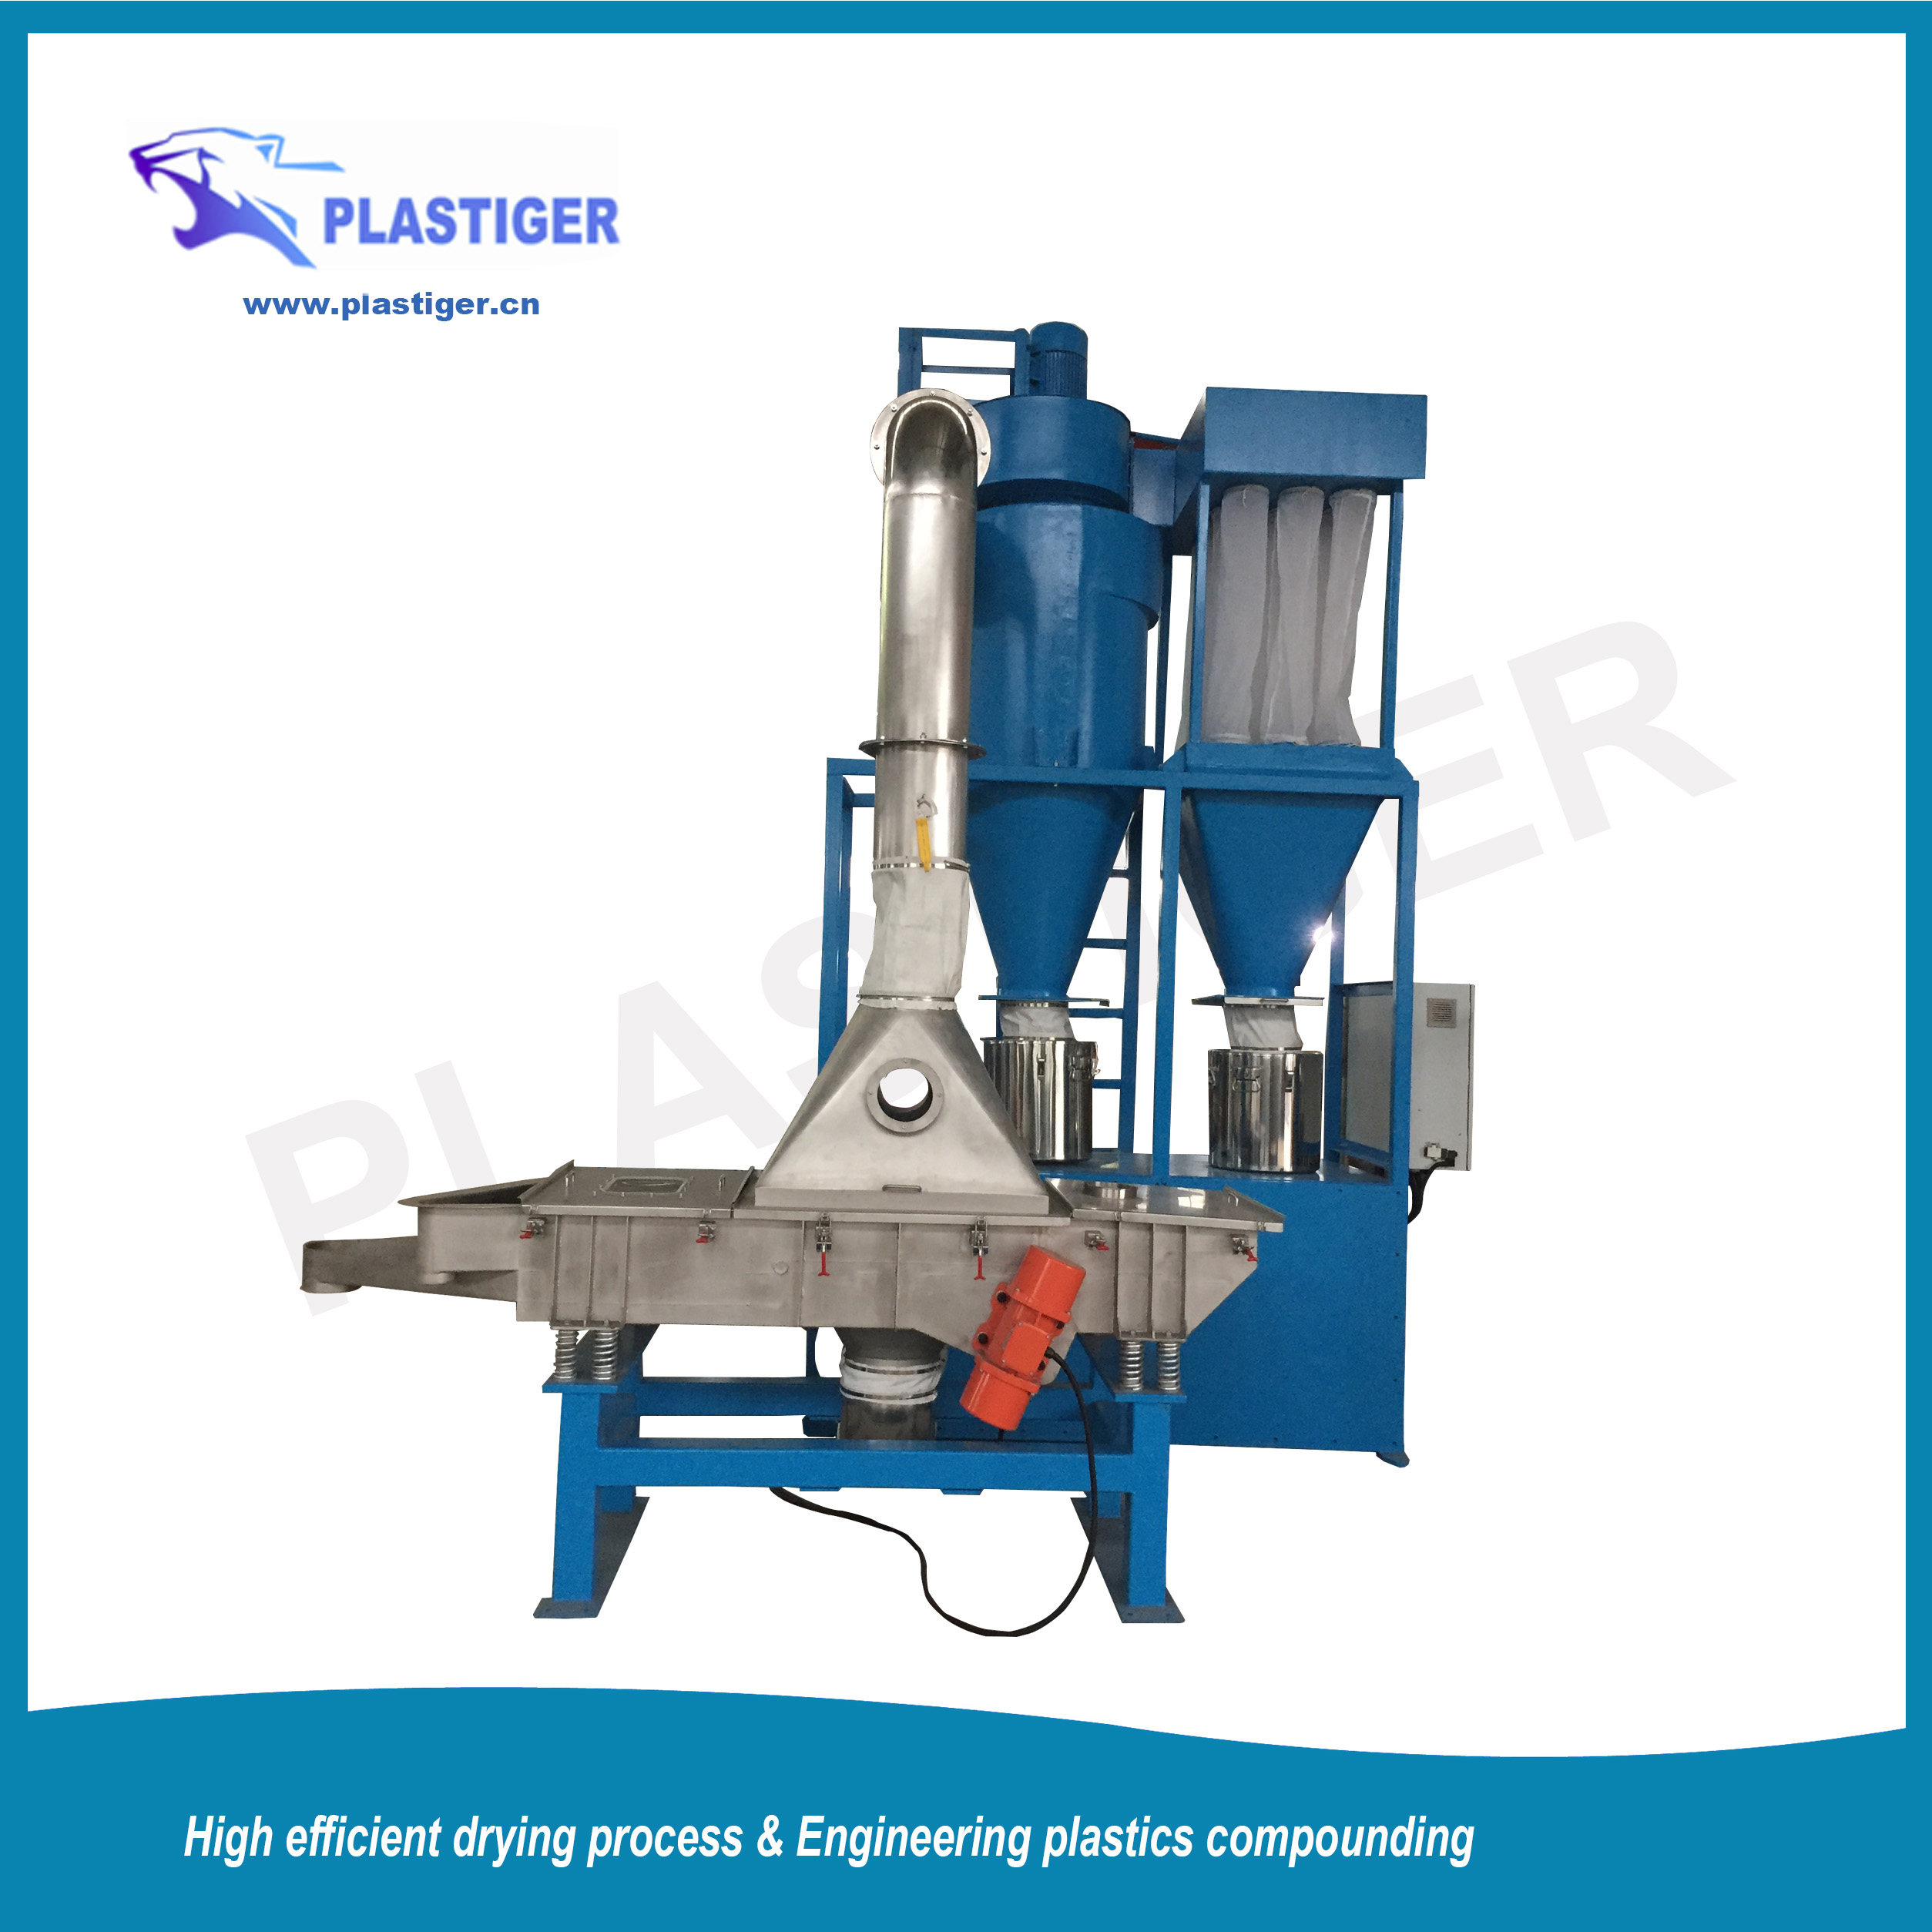 Multifunctional Reciprocating Classifier for drying and sieving